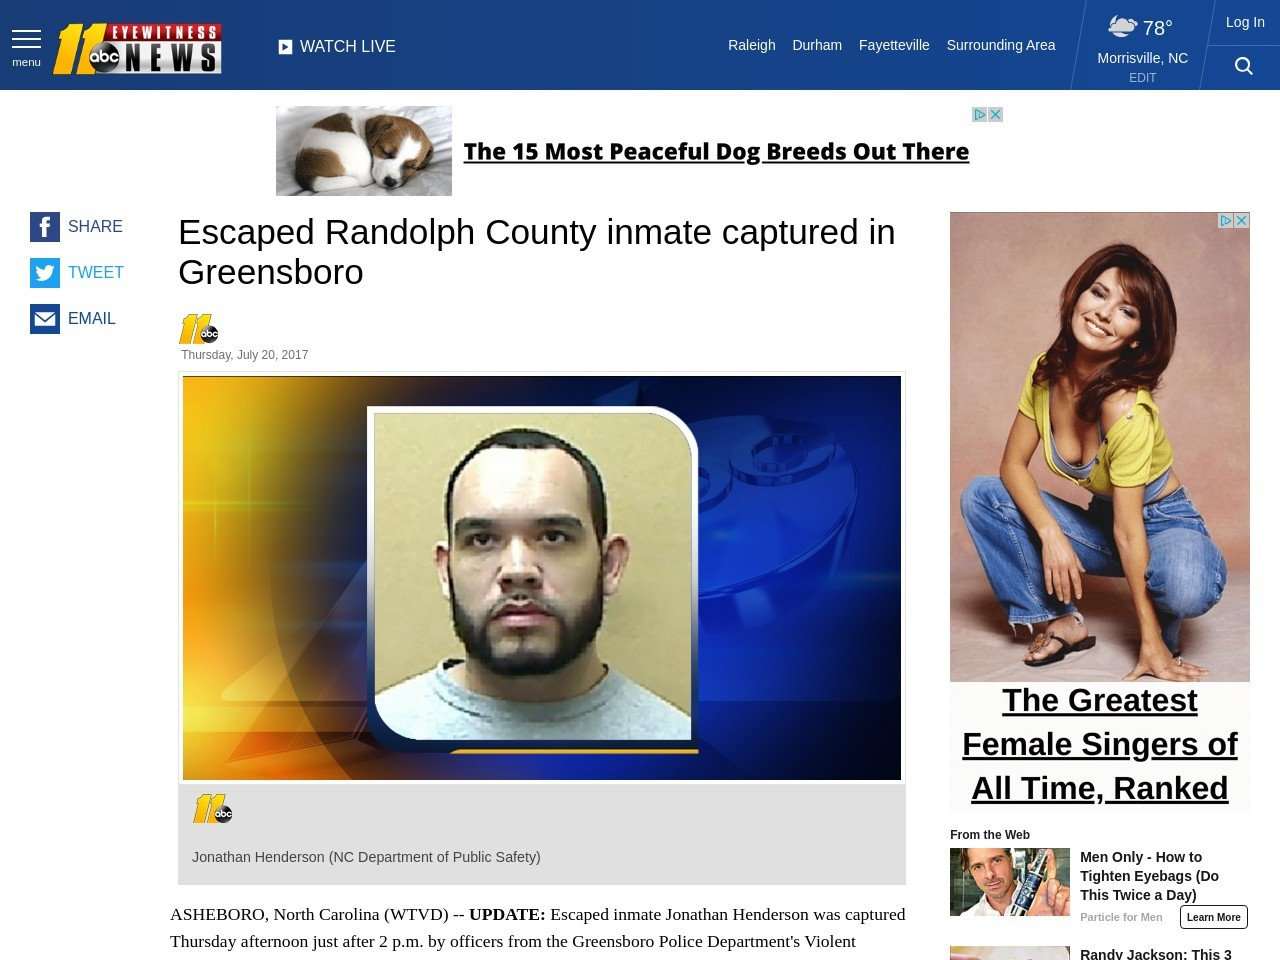 Inmate escapes from Randolph County prison